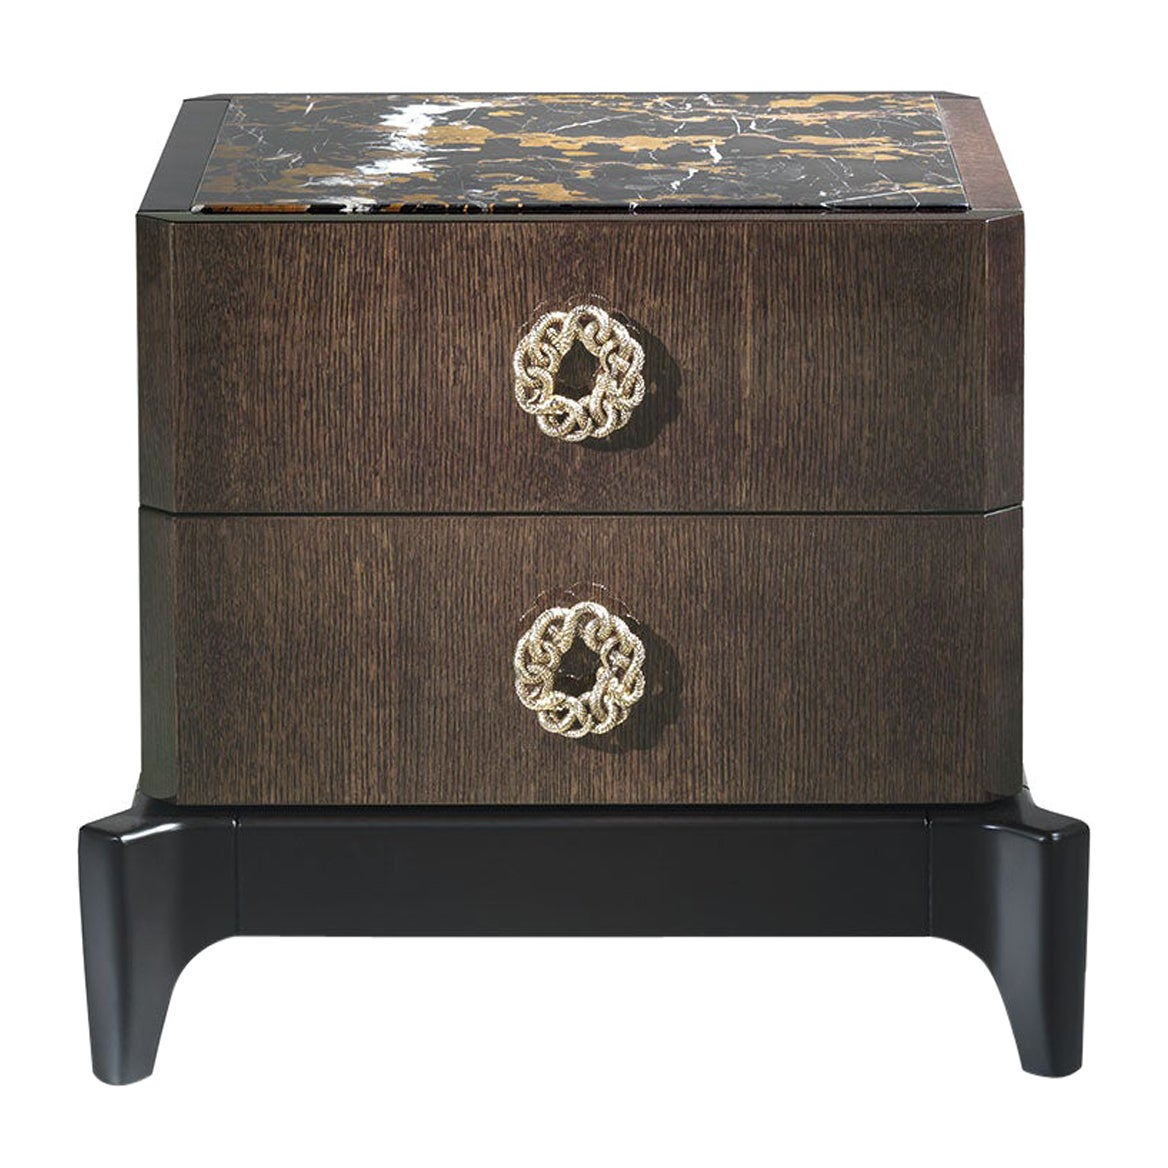 Corner.2 Night table in Wood and Marble Top by Roberto Cavalli Home Interiors